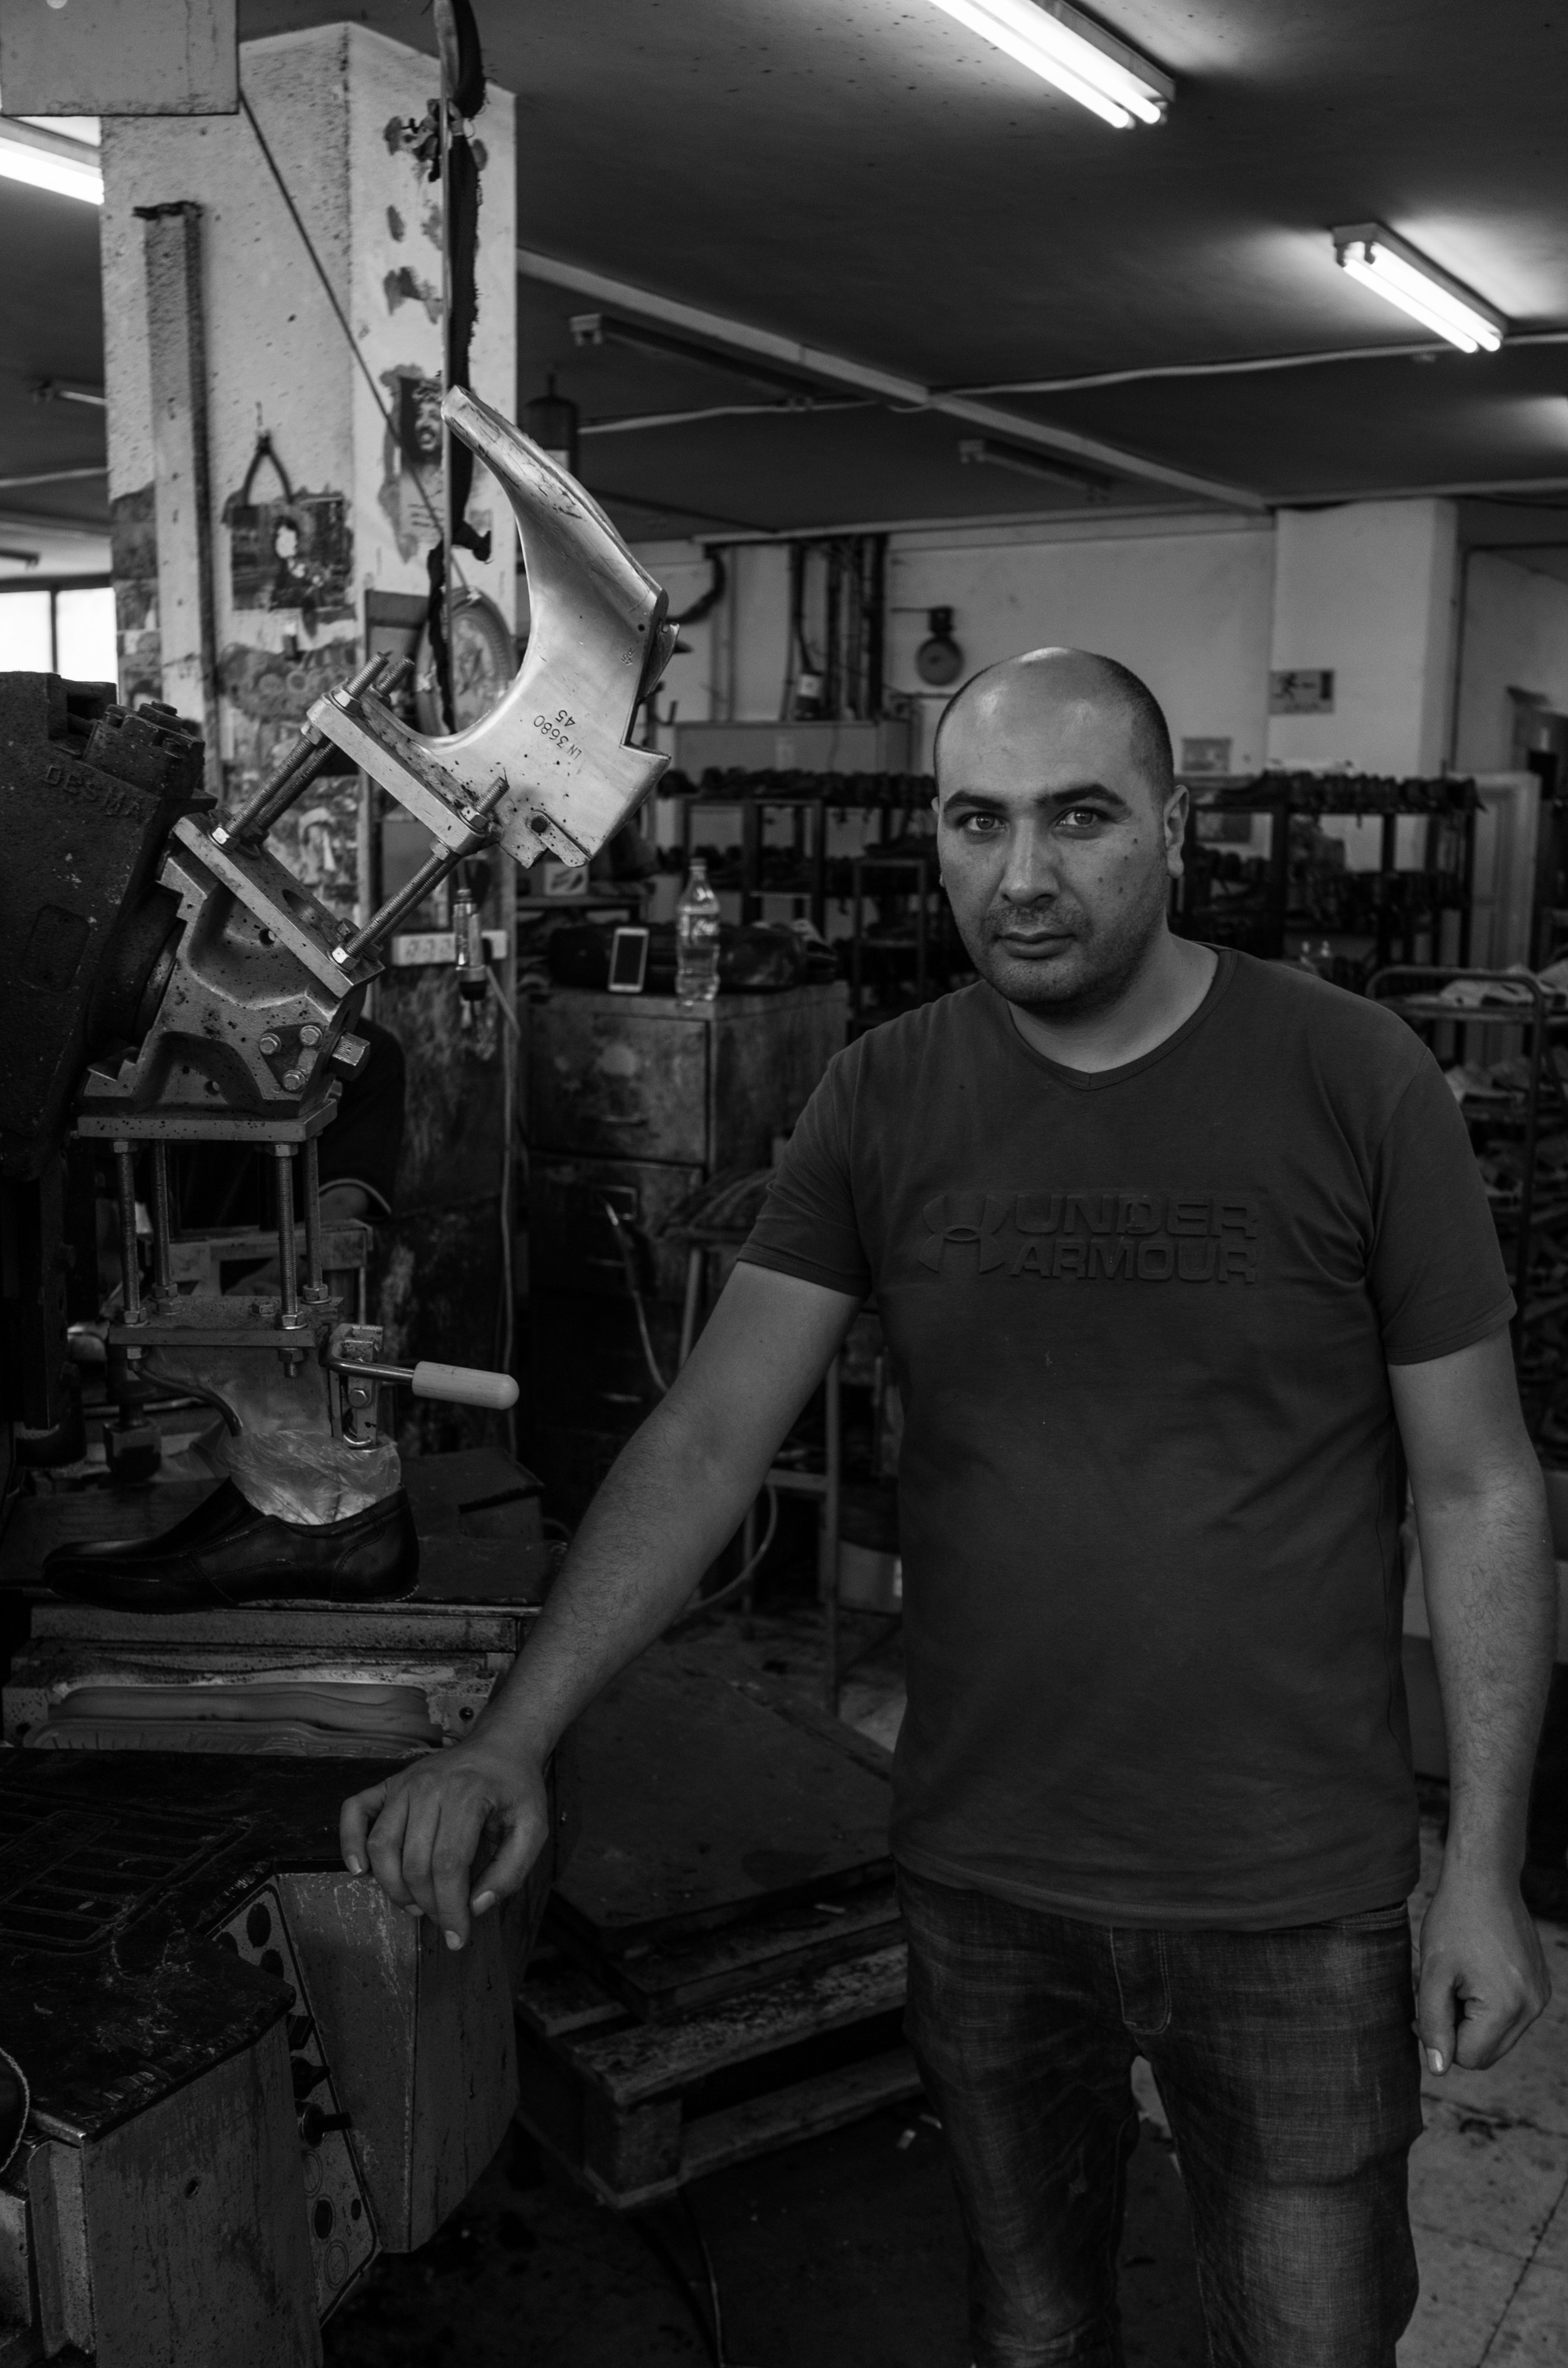 Owner of a factory, Hebron, 2017